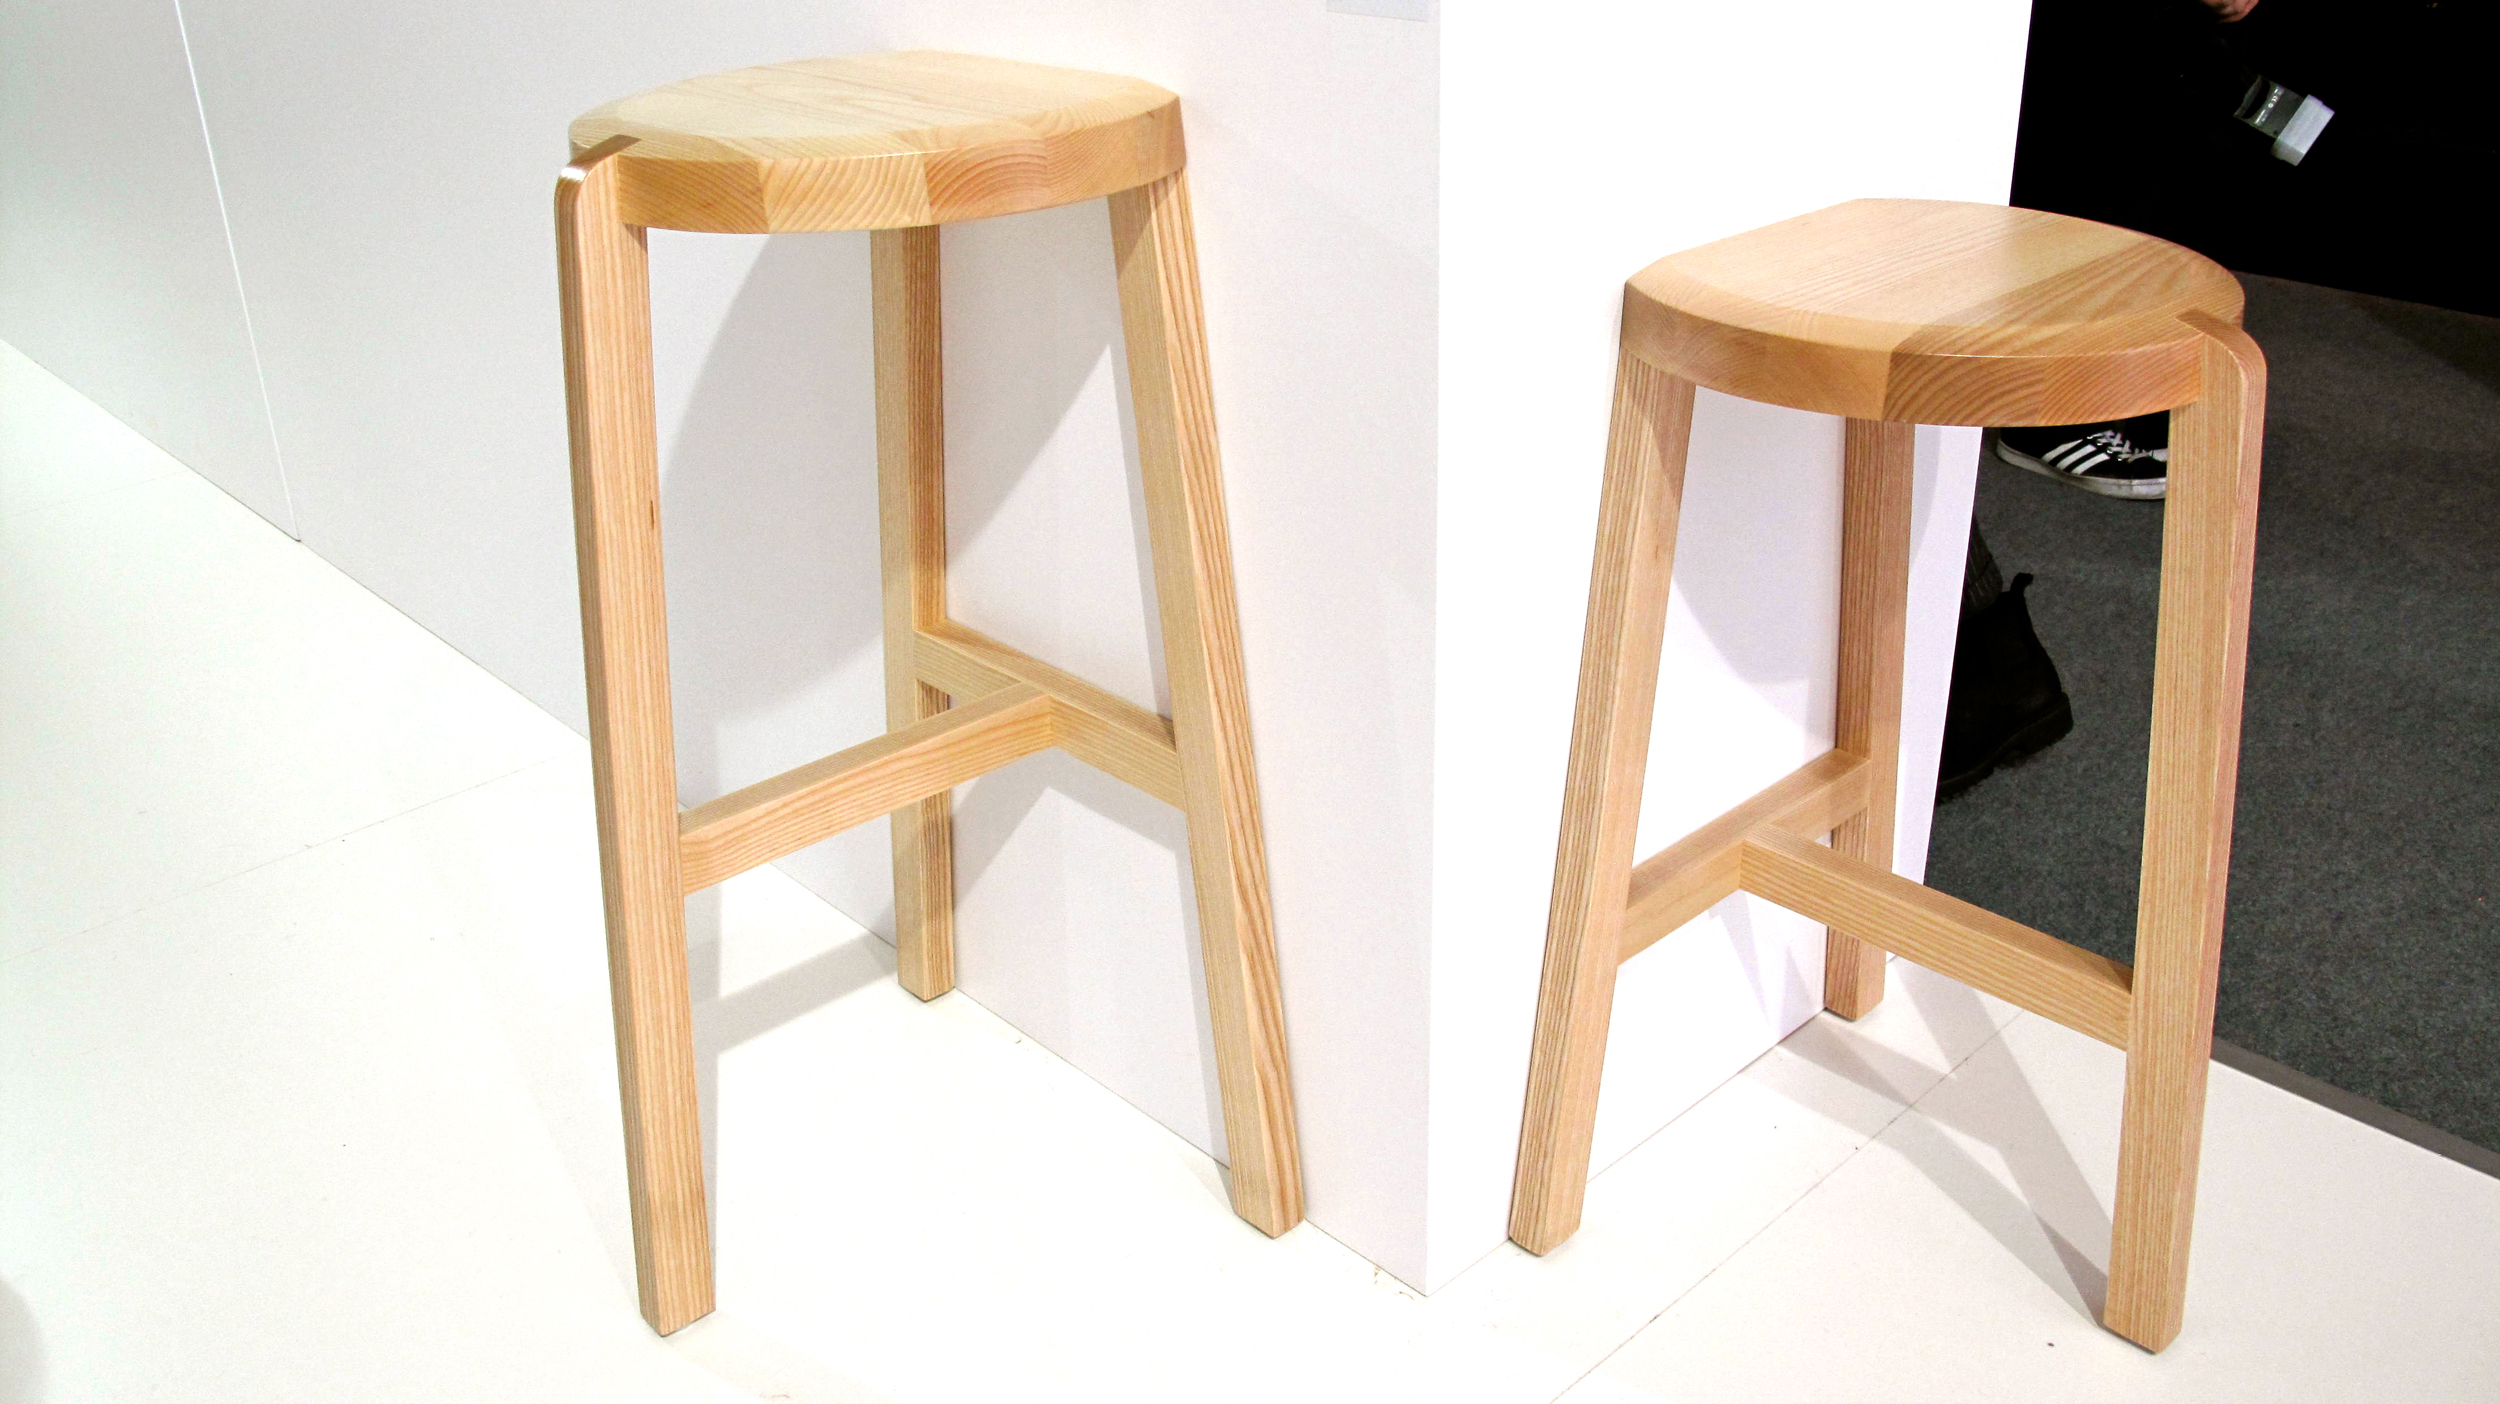 Oyster - Wood stool by design duo Geckeler Michels  Util |    www.thisisutil.com